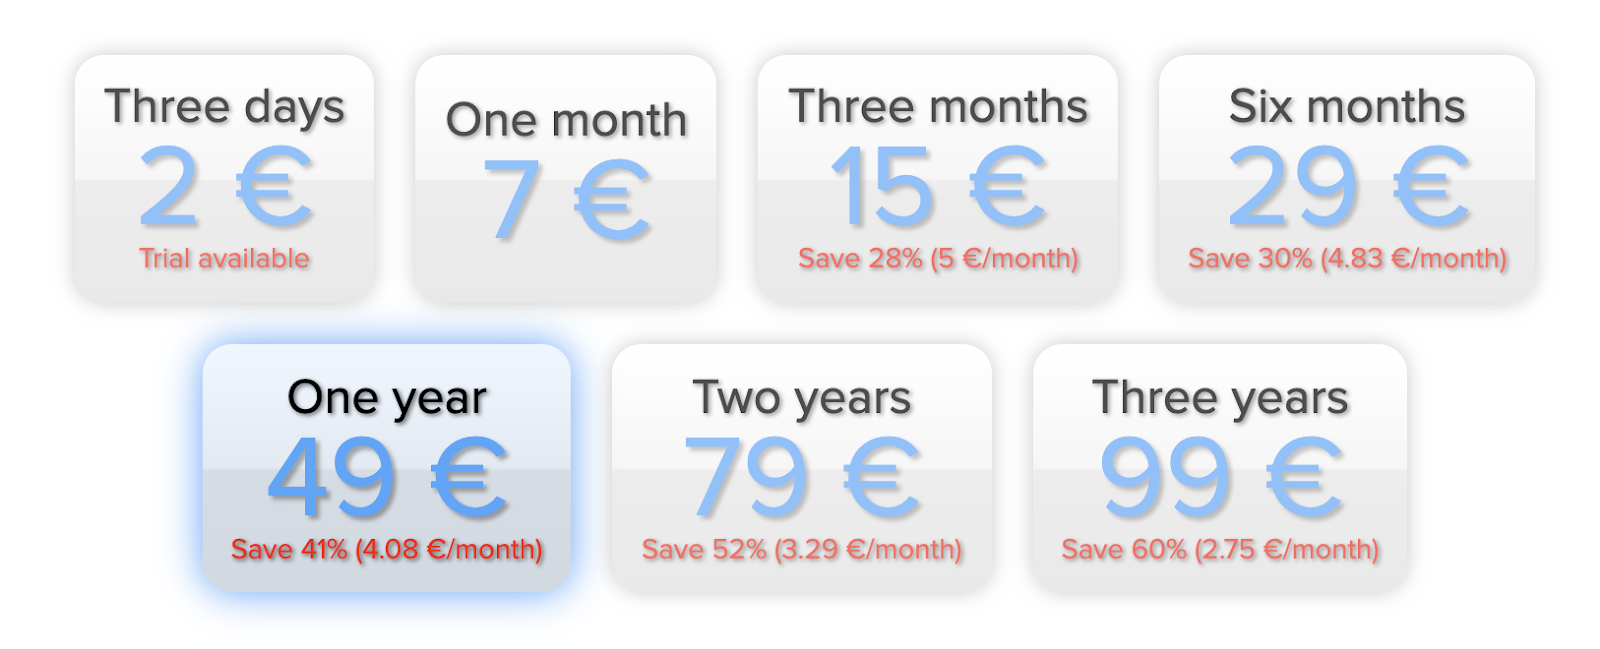 AirVPN pricing and plans